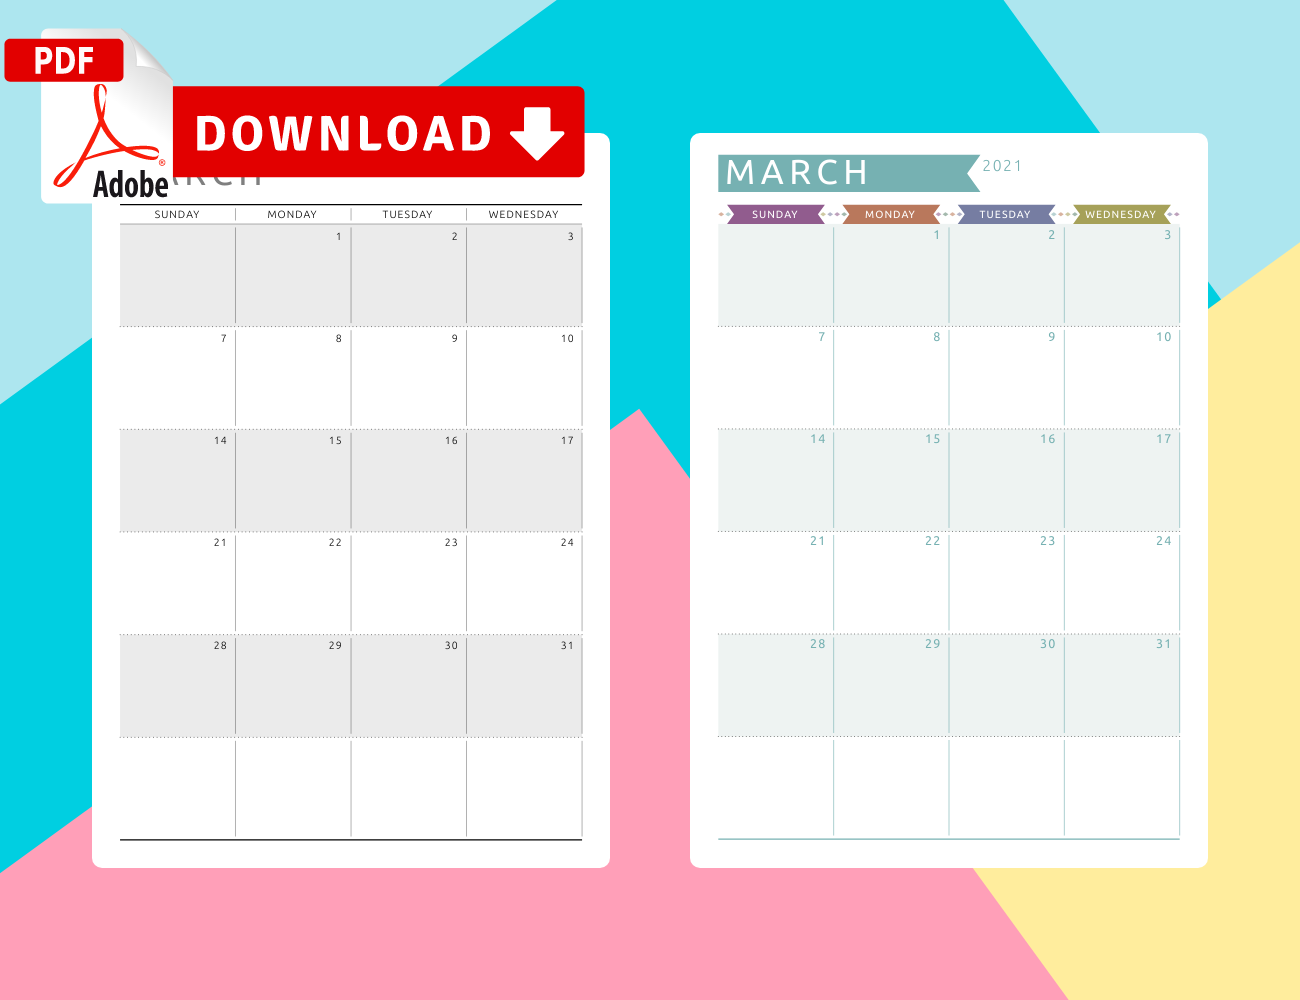 March 2021 Calendar Templates – Download Pdf Intended For March 2021 Calendar Template